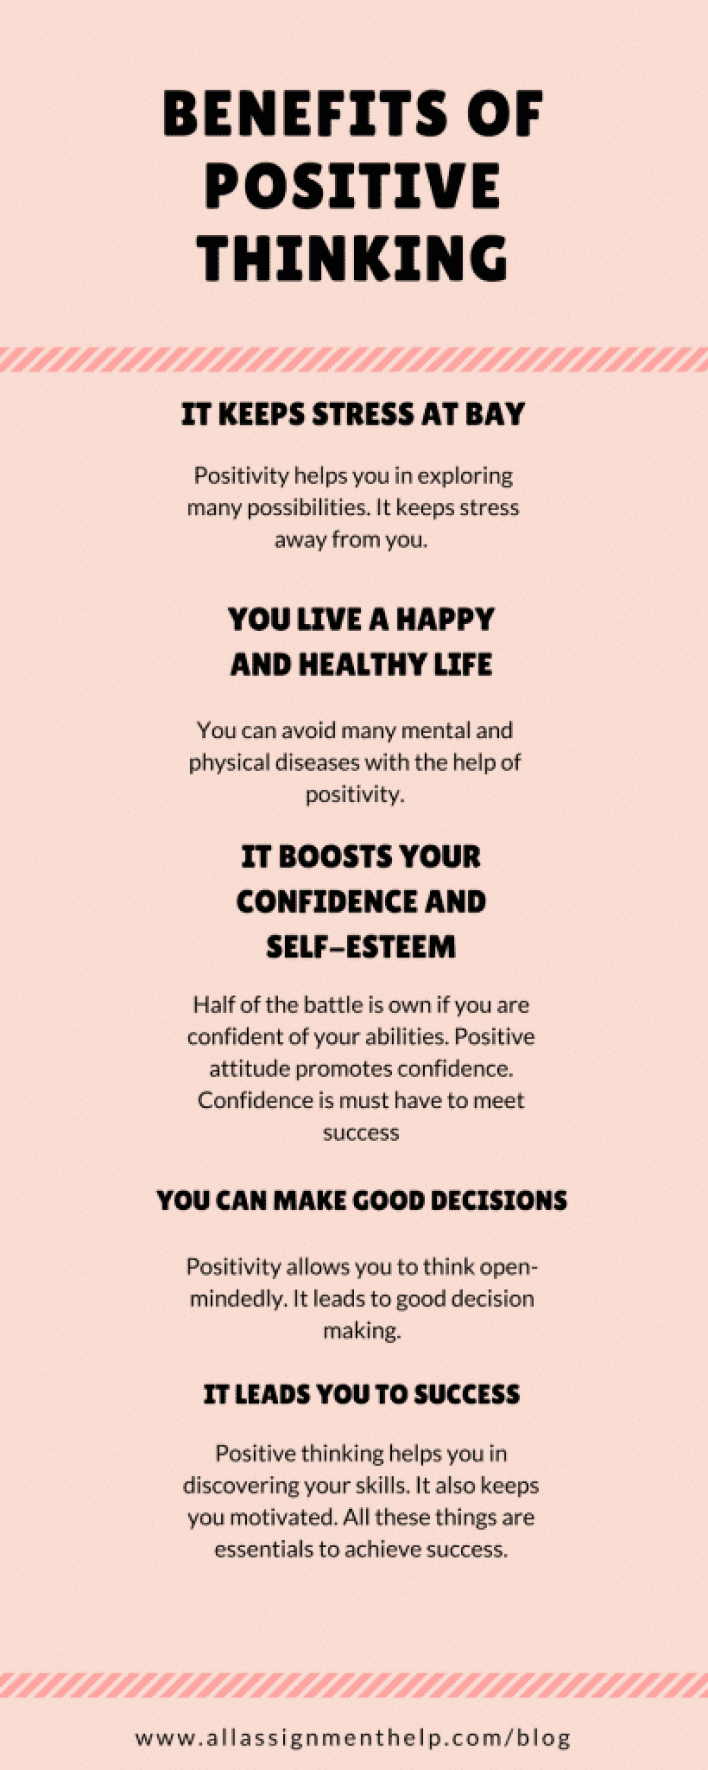 Reduce stress by positive thinking